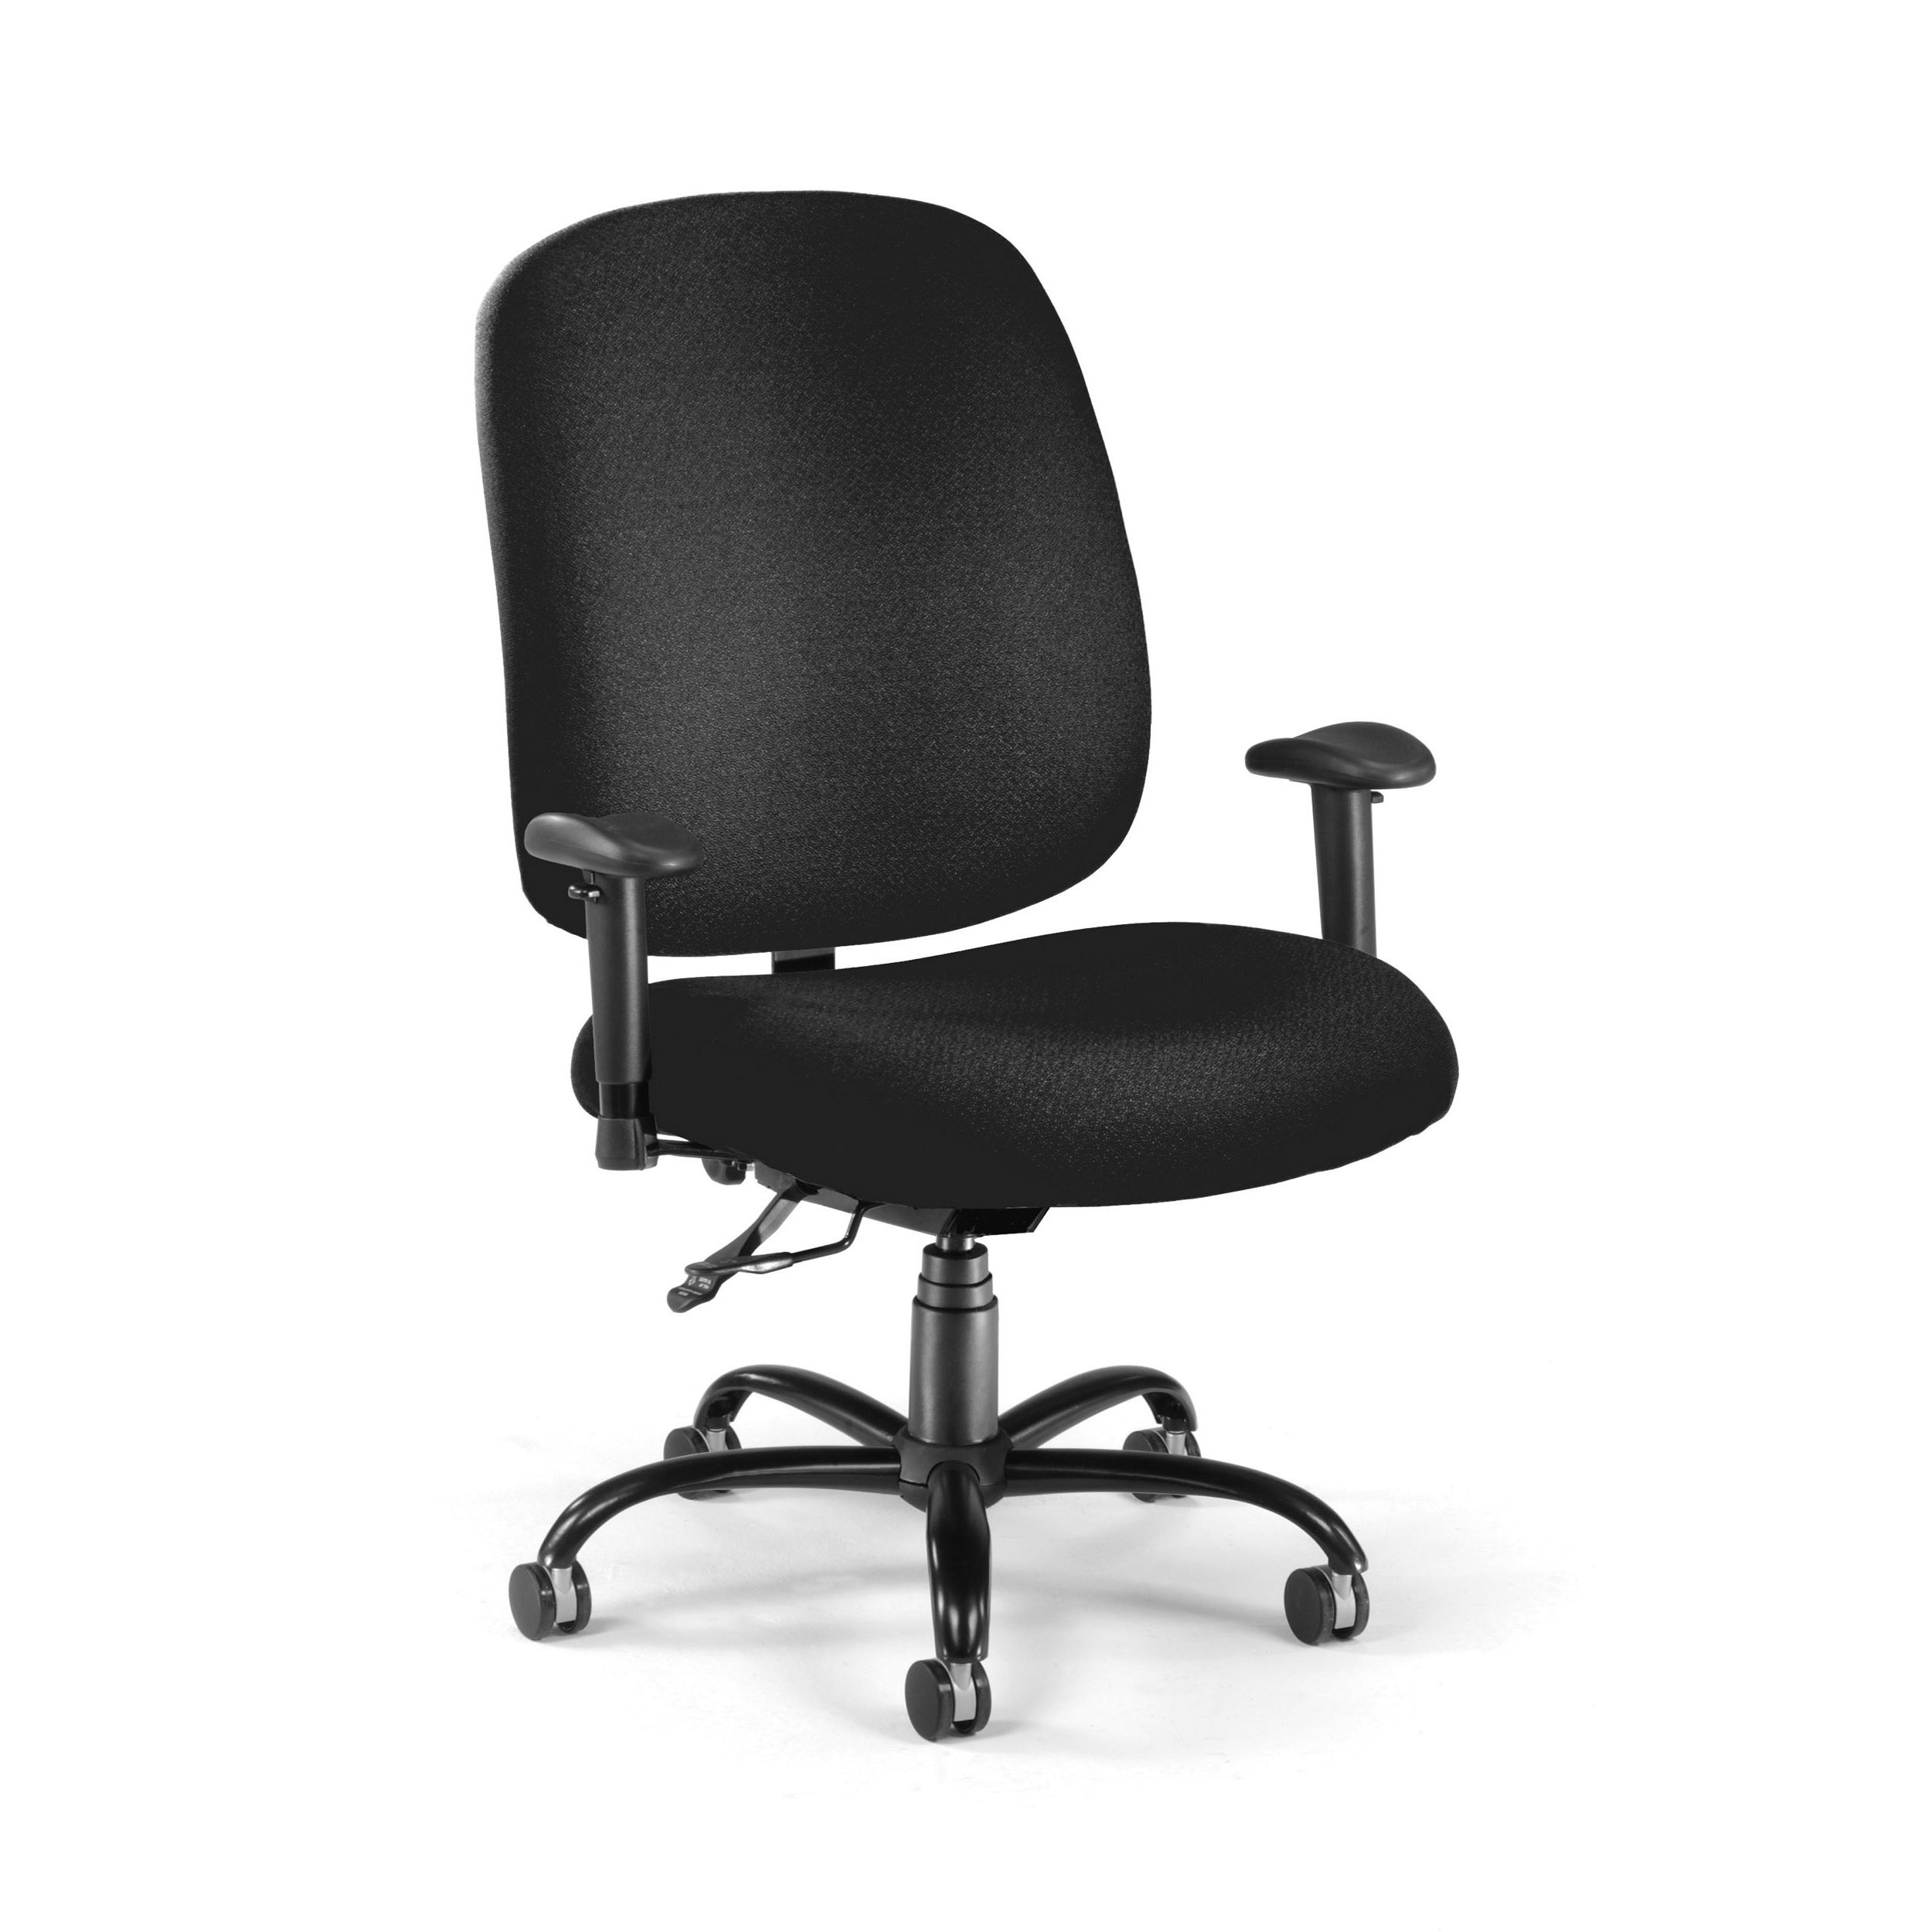 Adjustable Ergonomic Black Office Chair